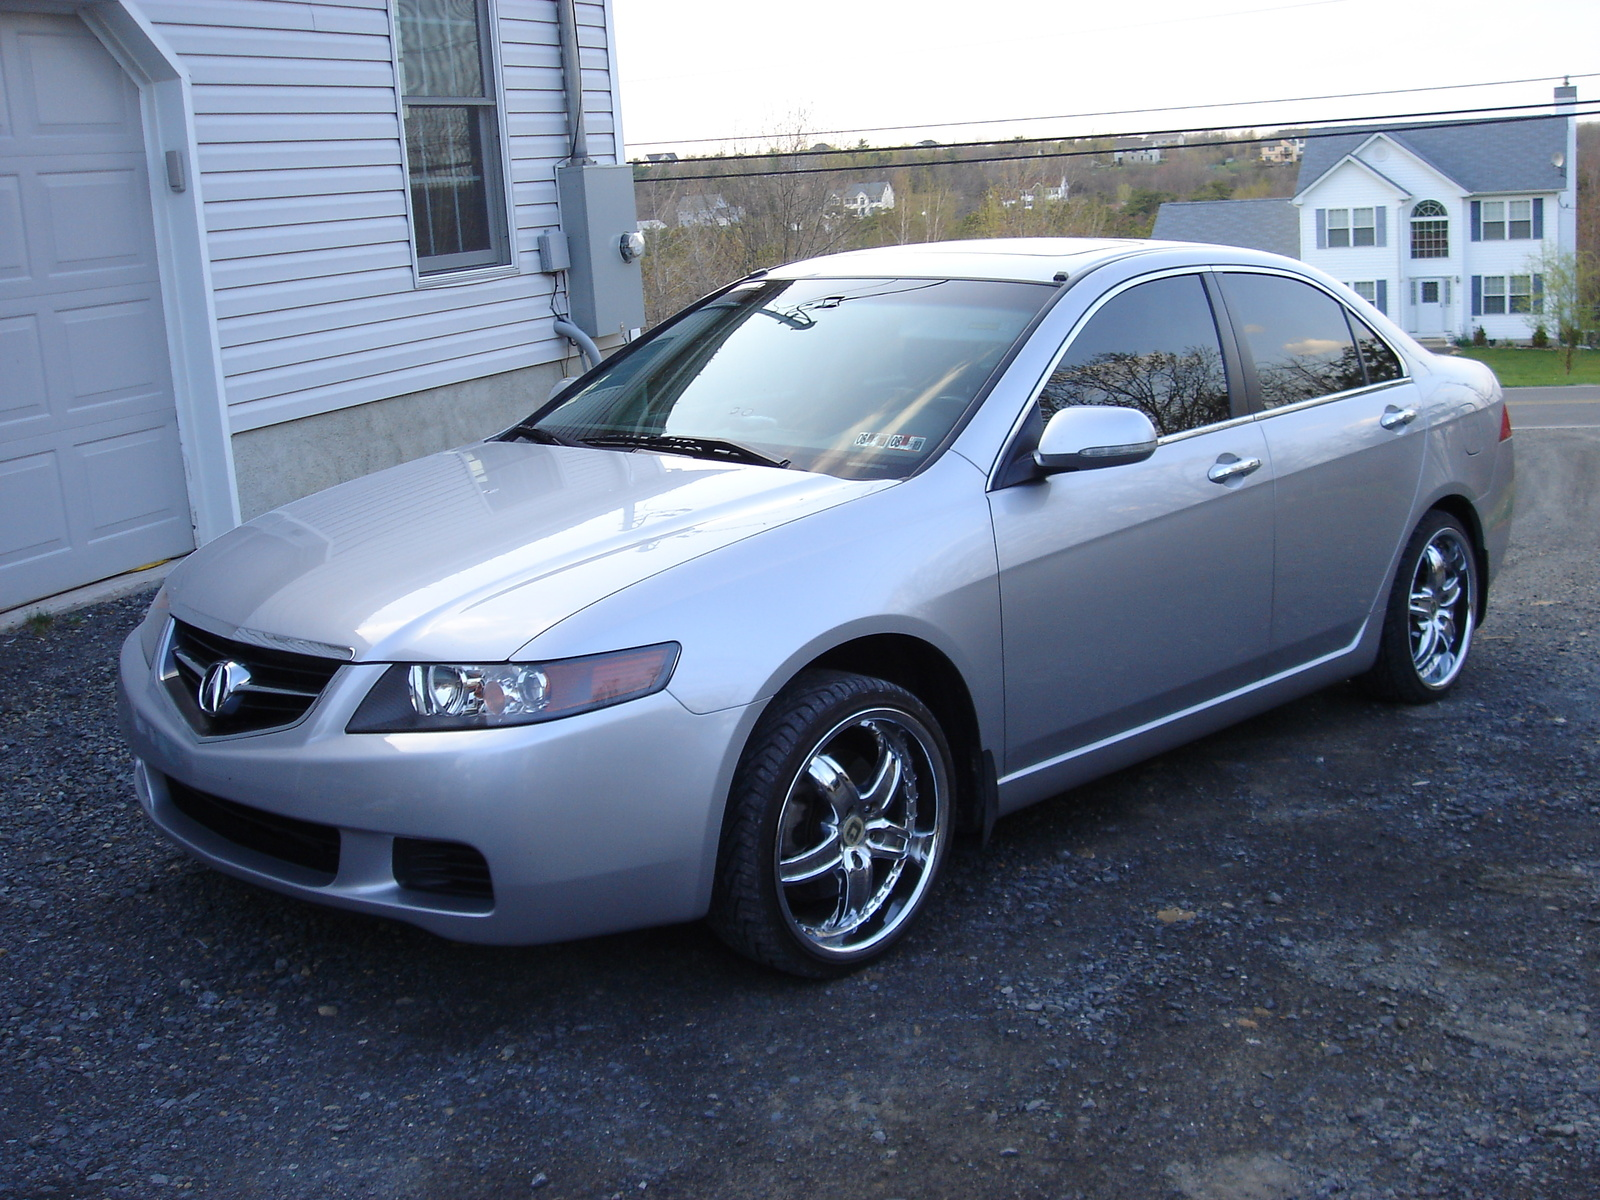 Picture of 2004 Acura TSX 5-spd w/ Navigation